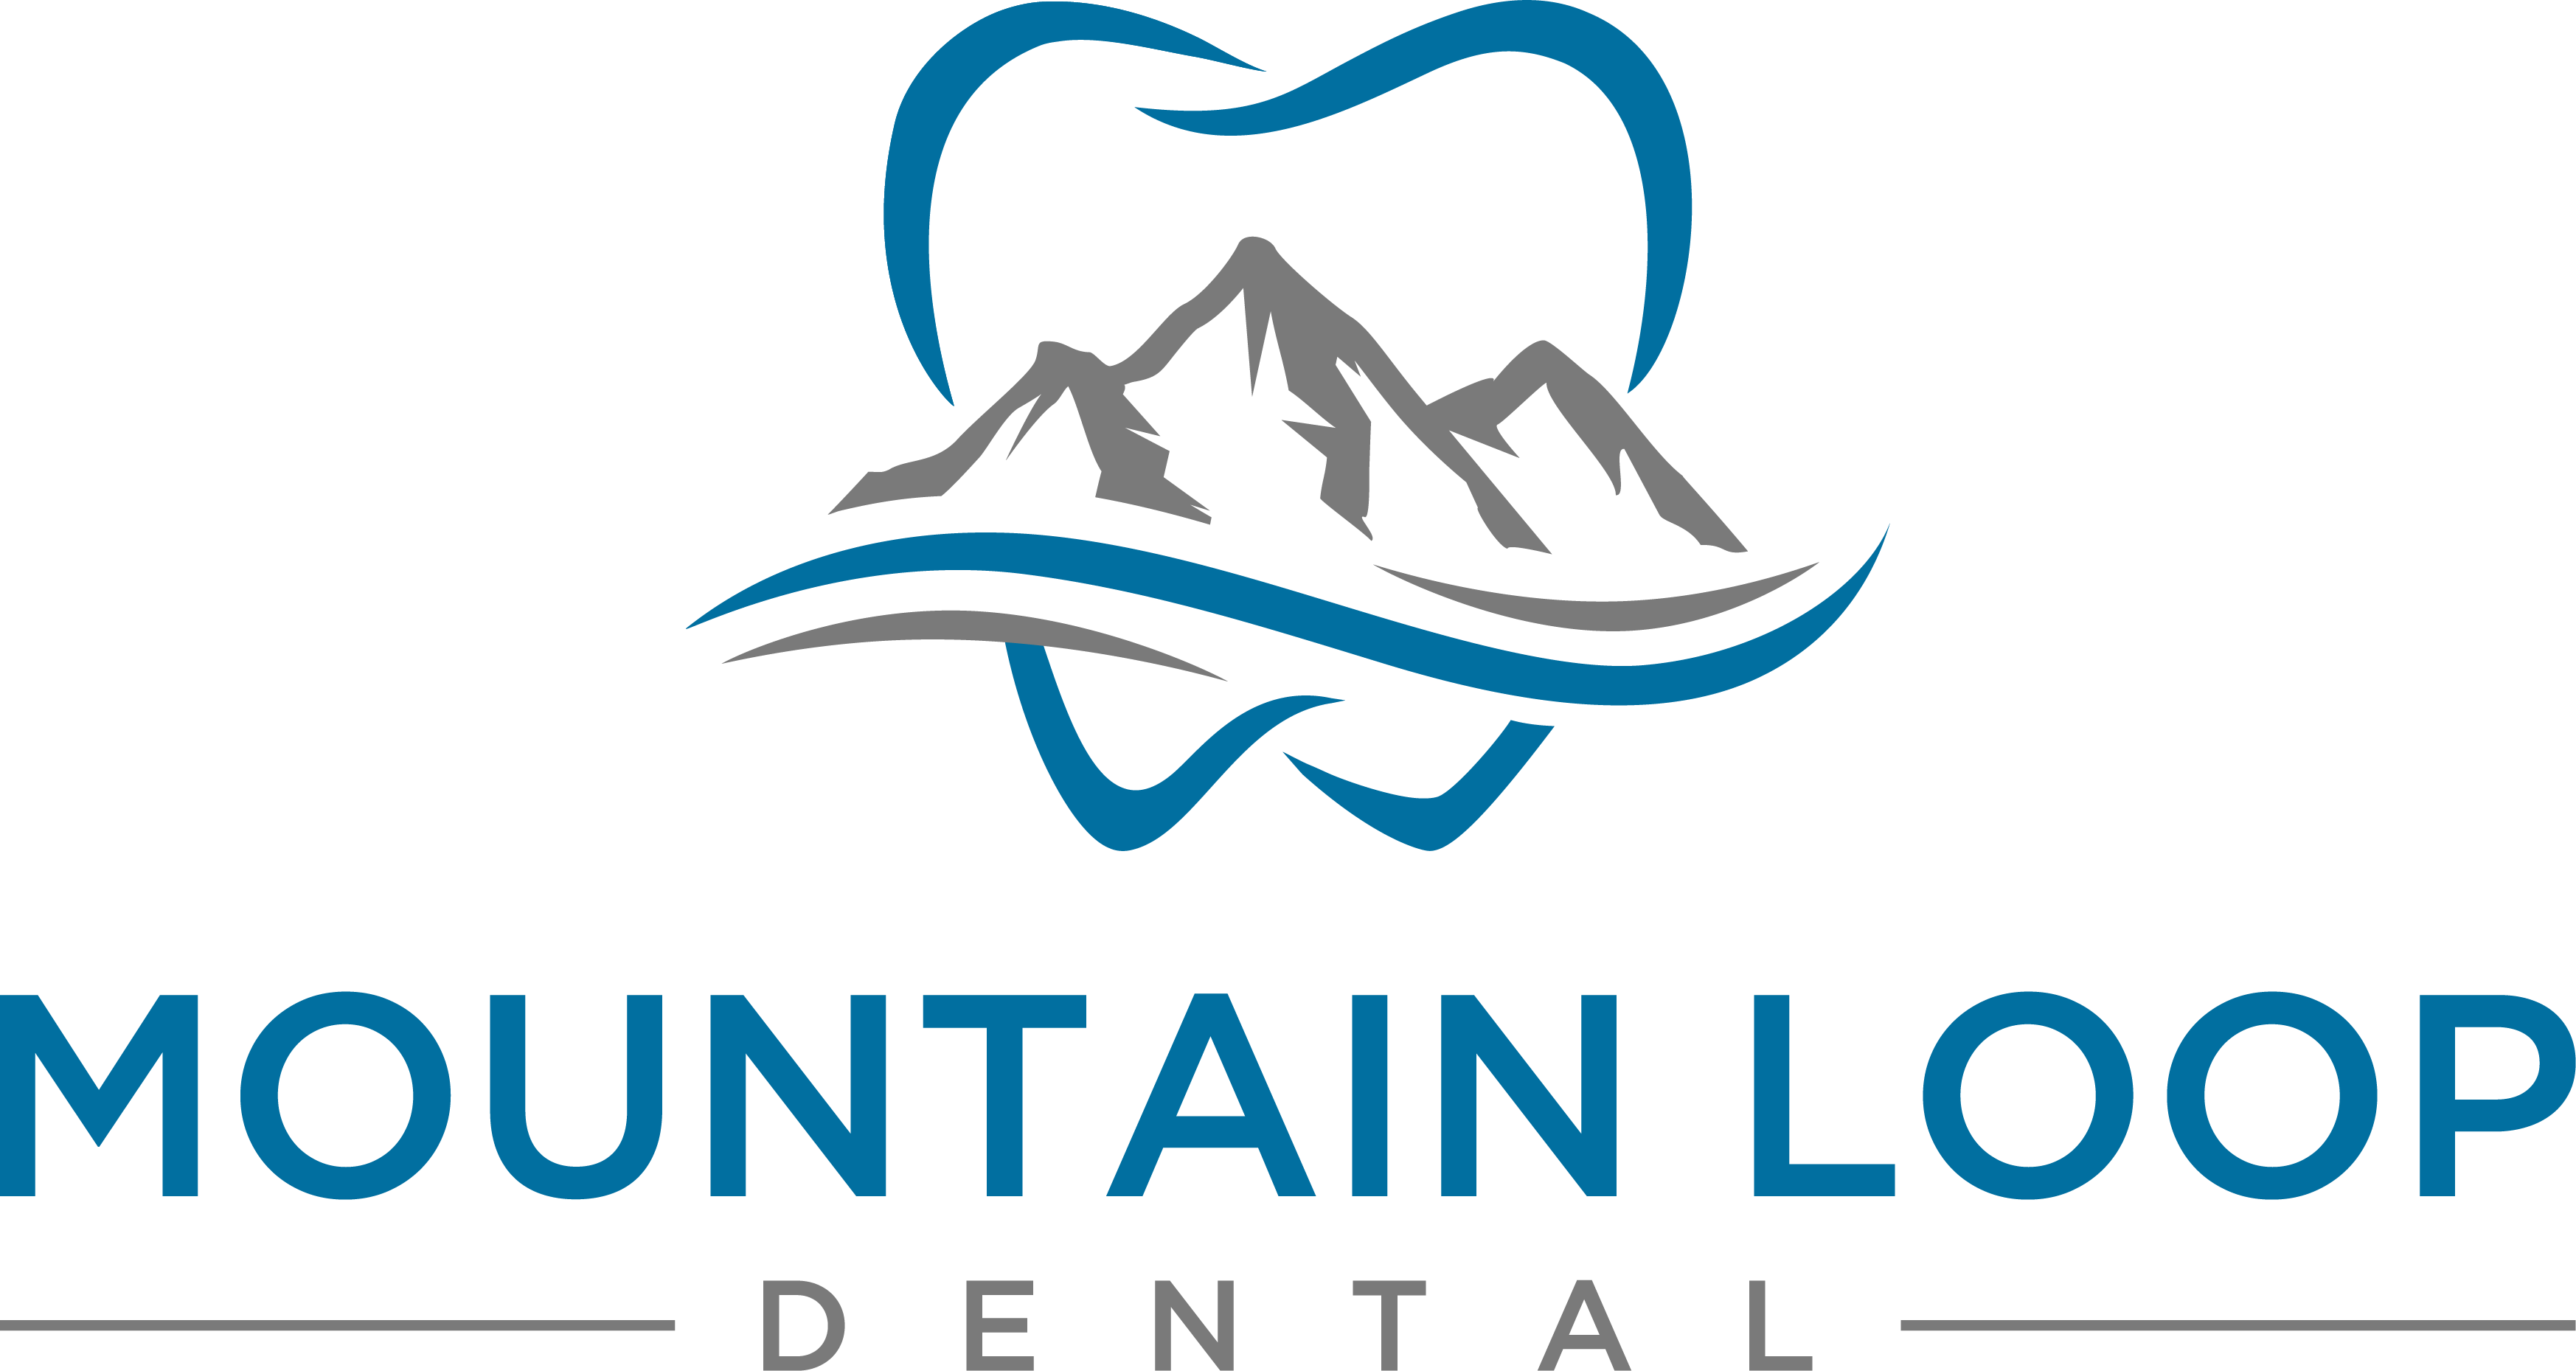 Mountain Loop Dental